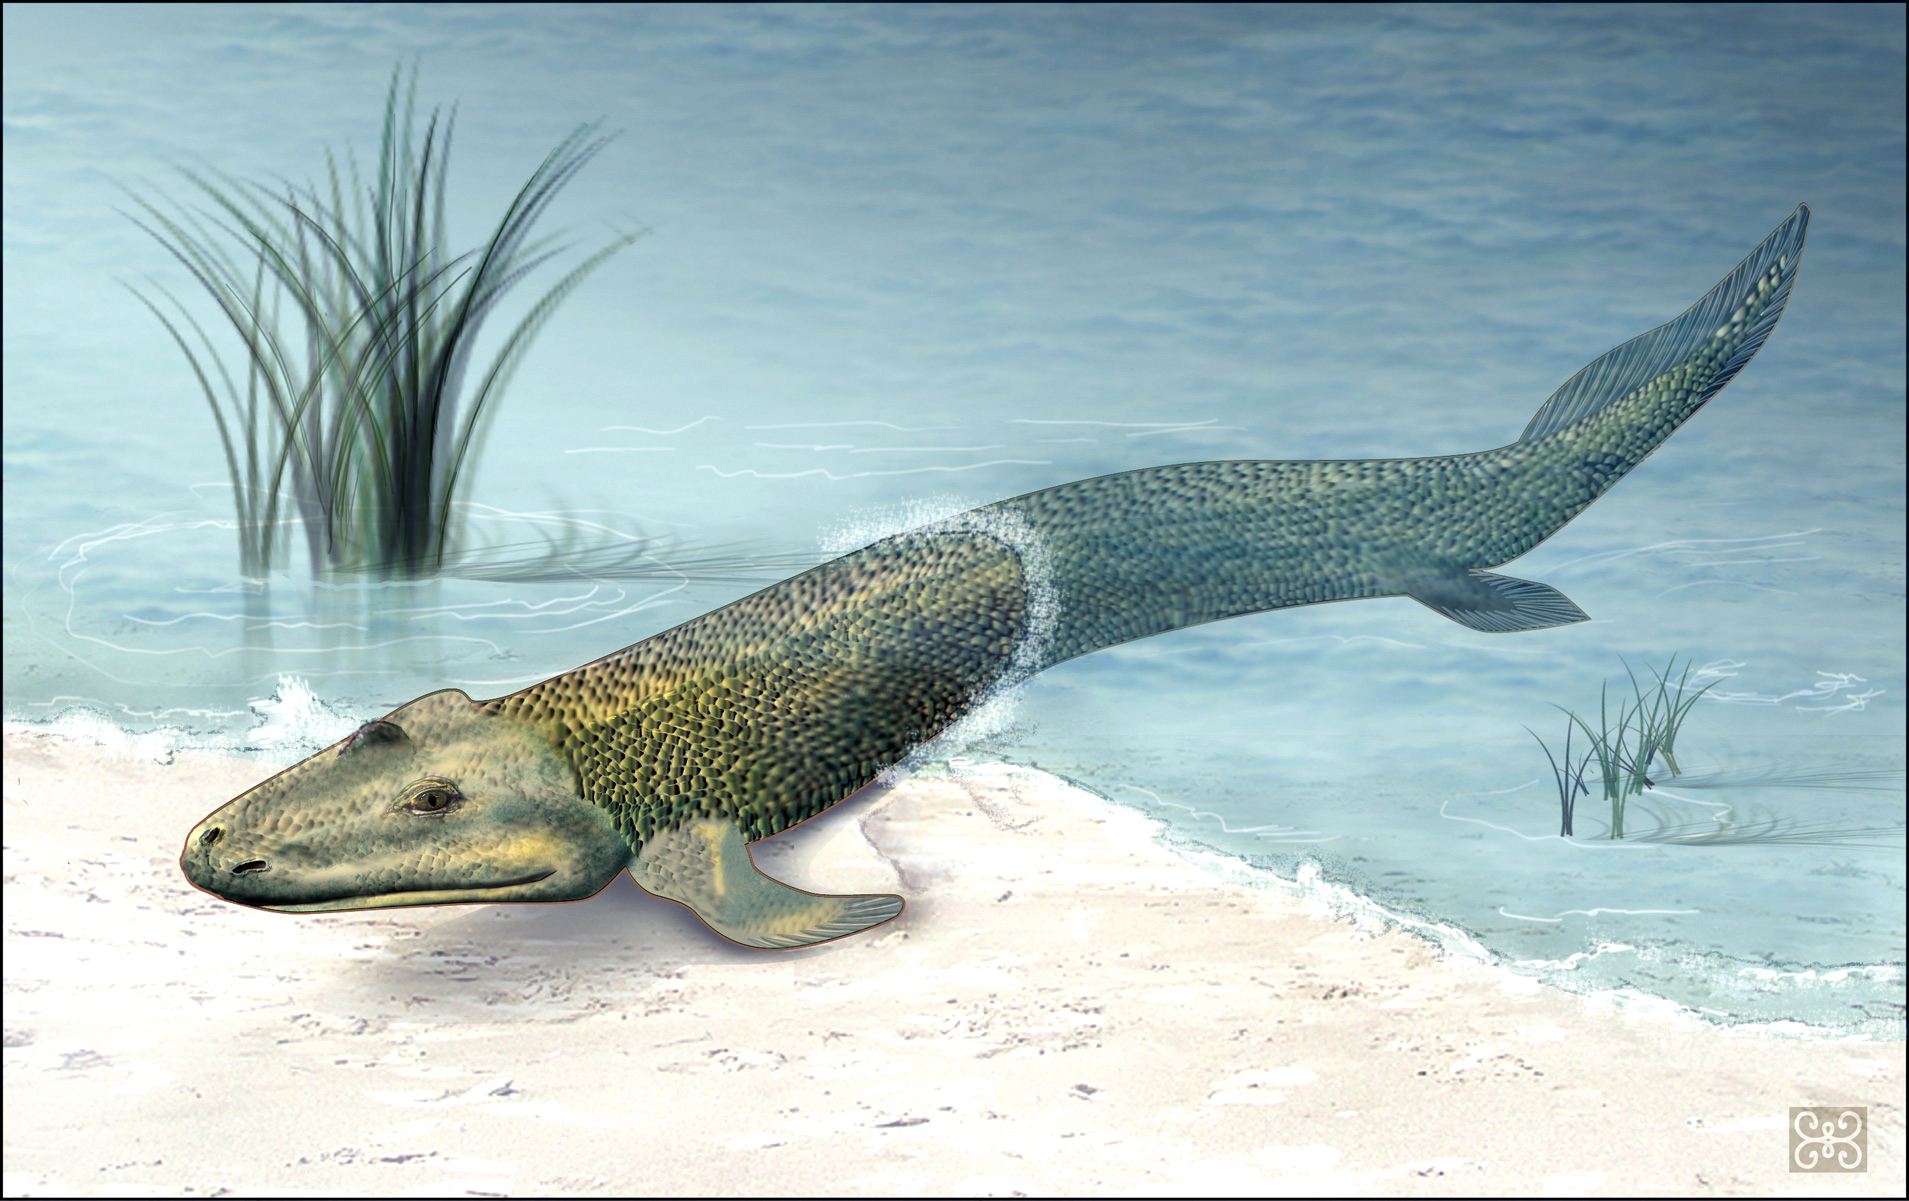 fossil_fish1_h1